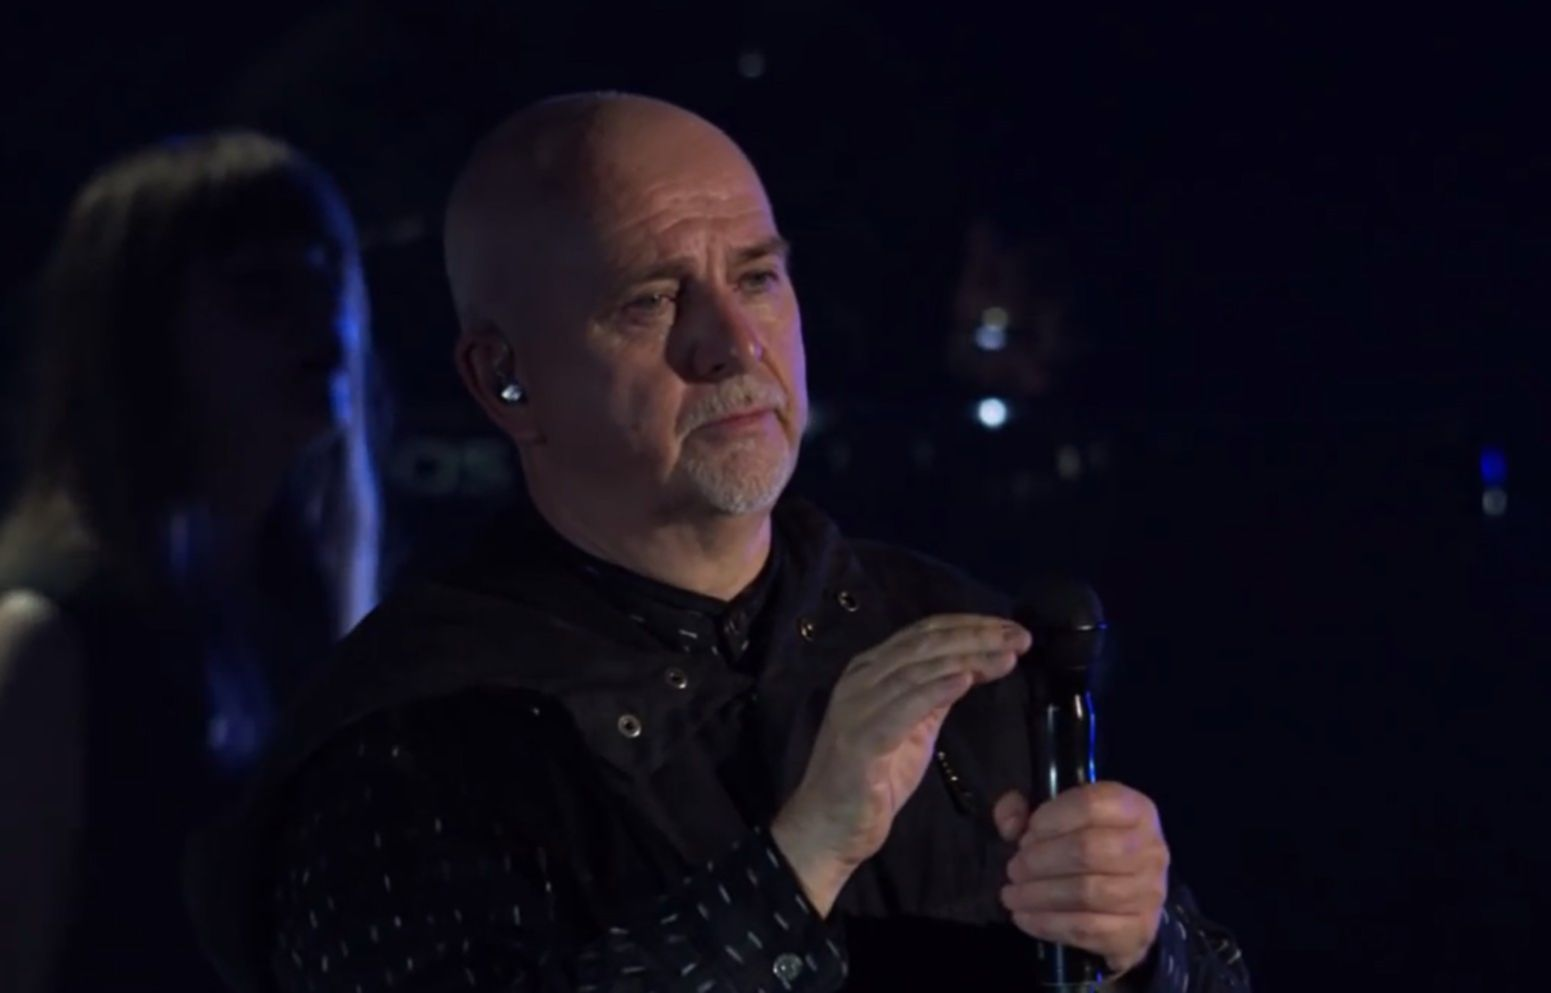 peter gabriel video still